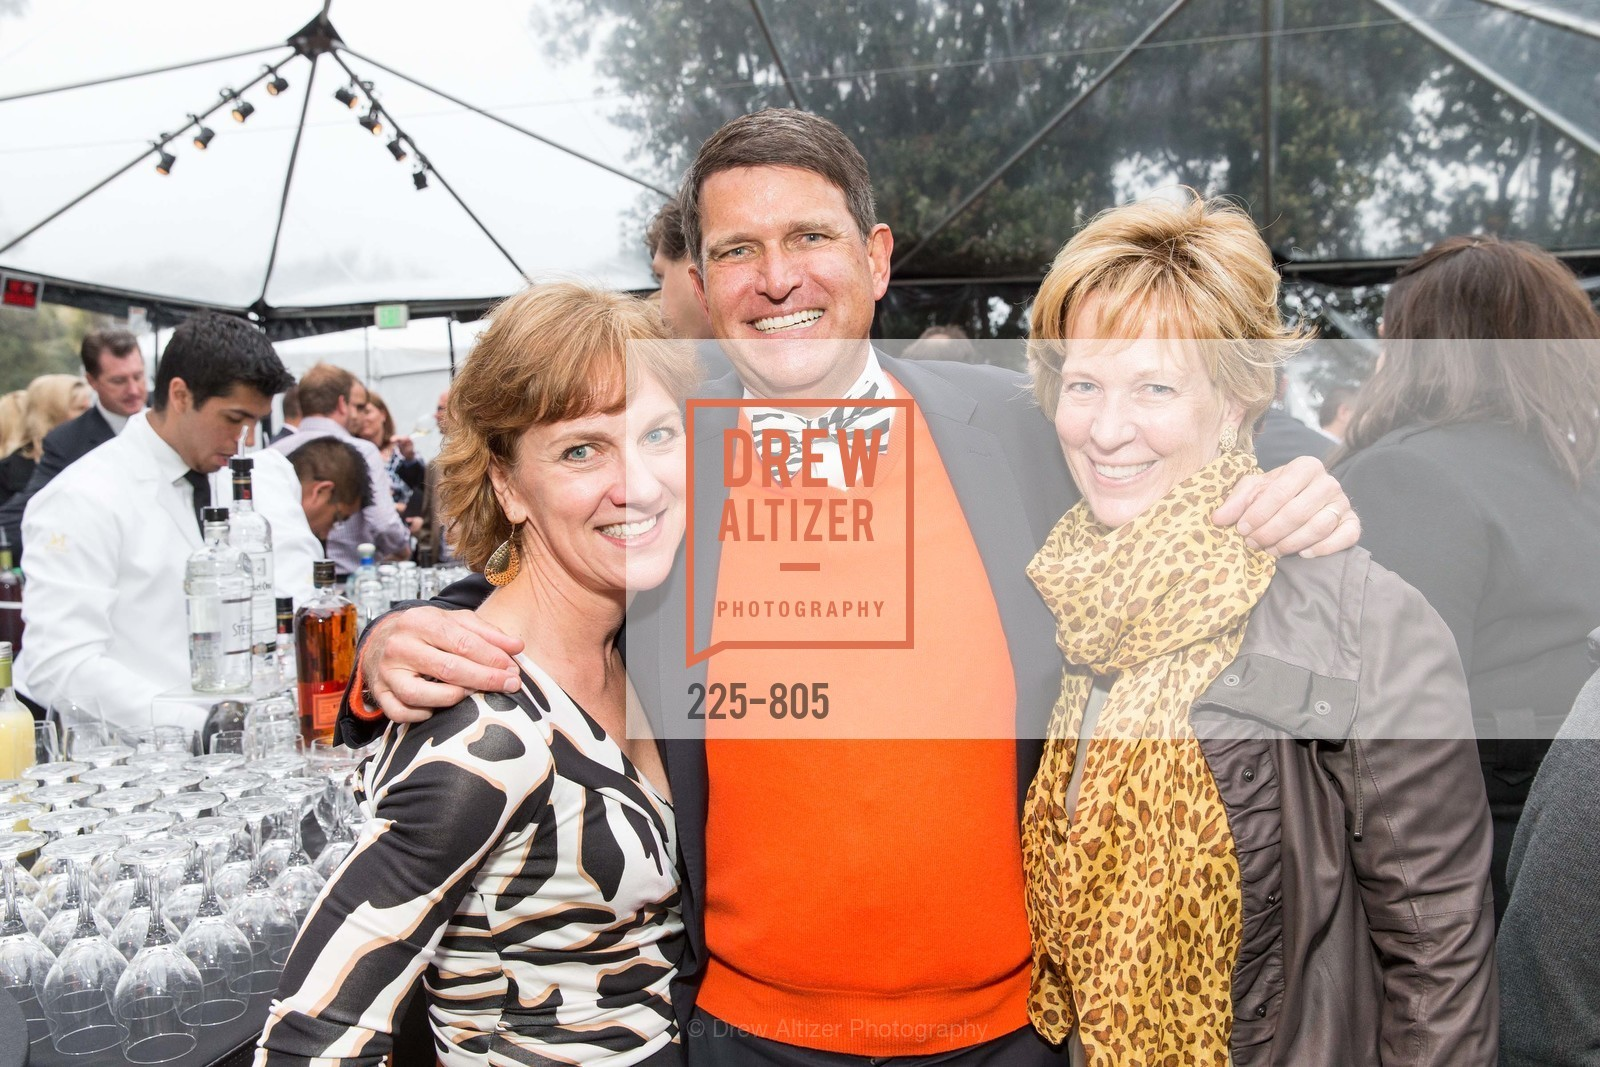 Lee Gregory, Edward Poole, Lynn Poole, ZOOFEST 2015, US, April 26th, 2015,Drew Altizer, Drew Altizer Photography, full-service event agency, private events, San Francisco photographer, photographer California